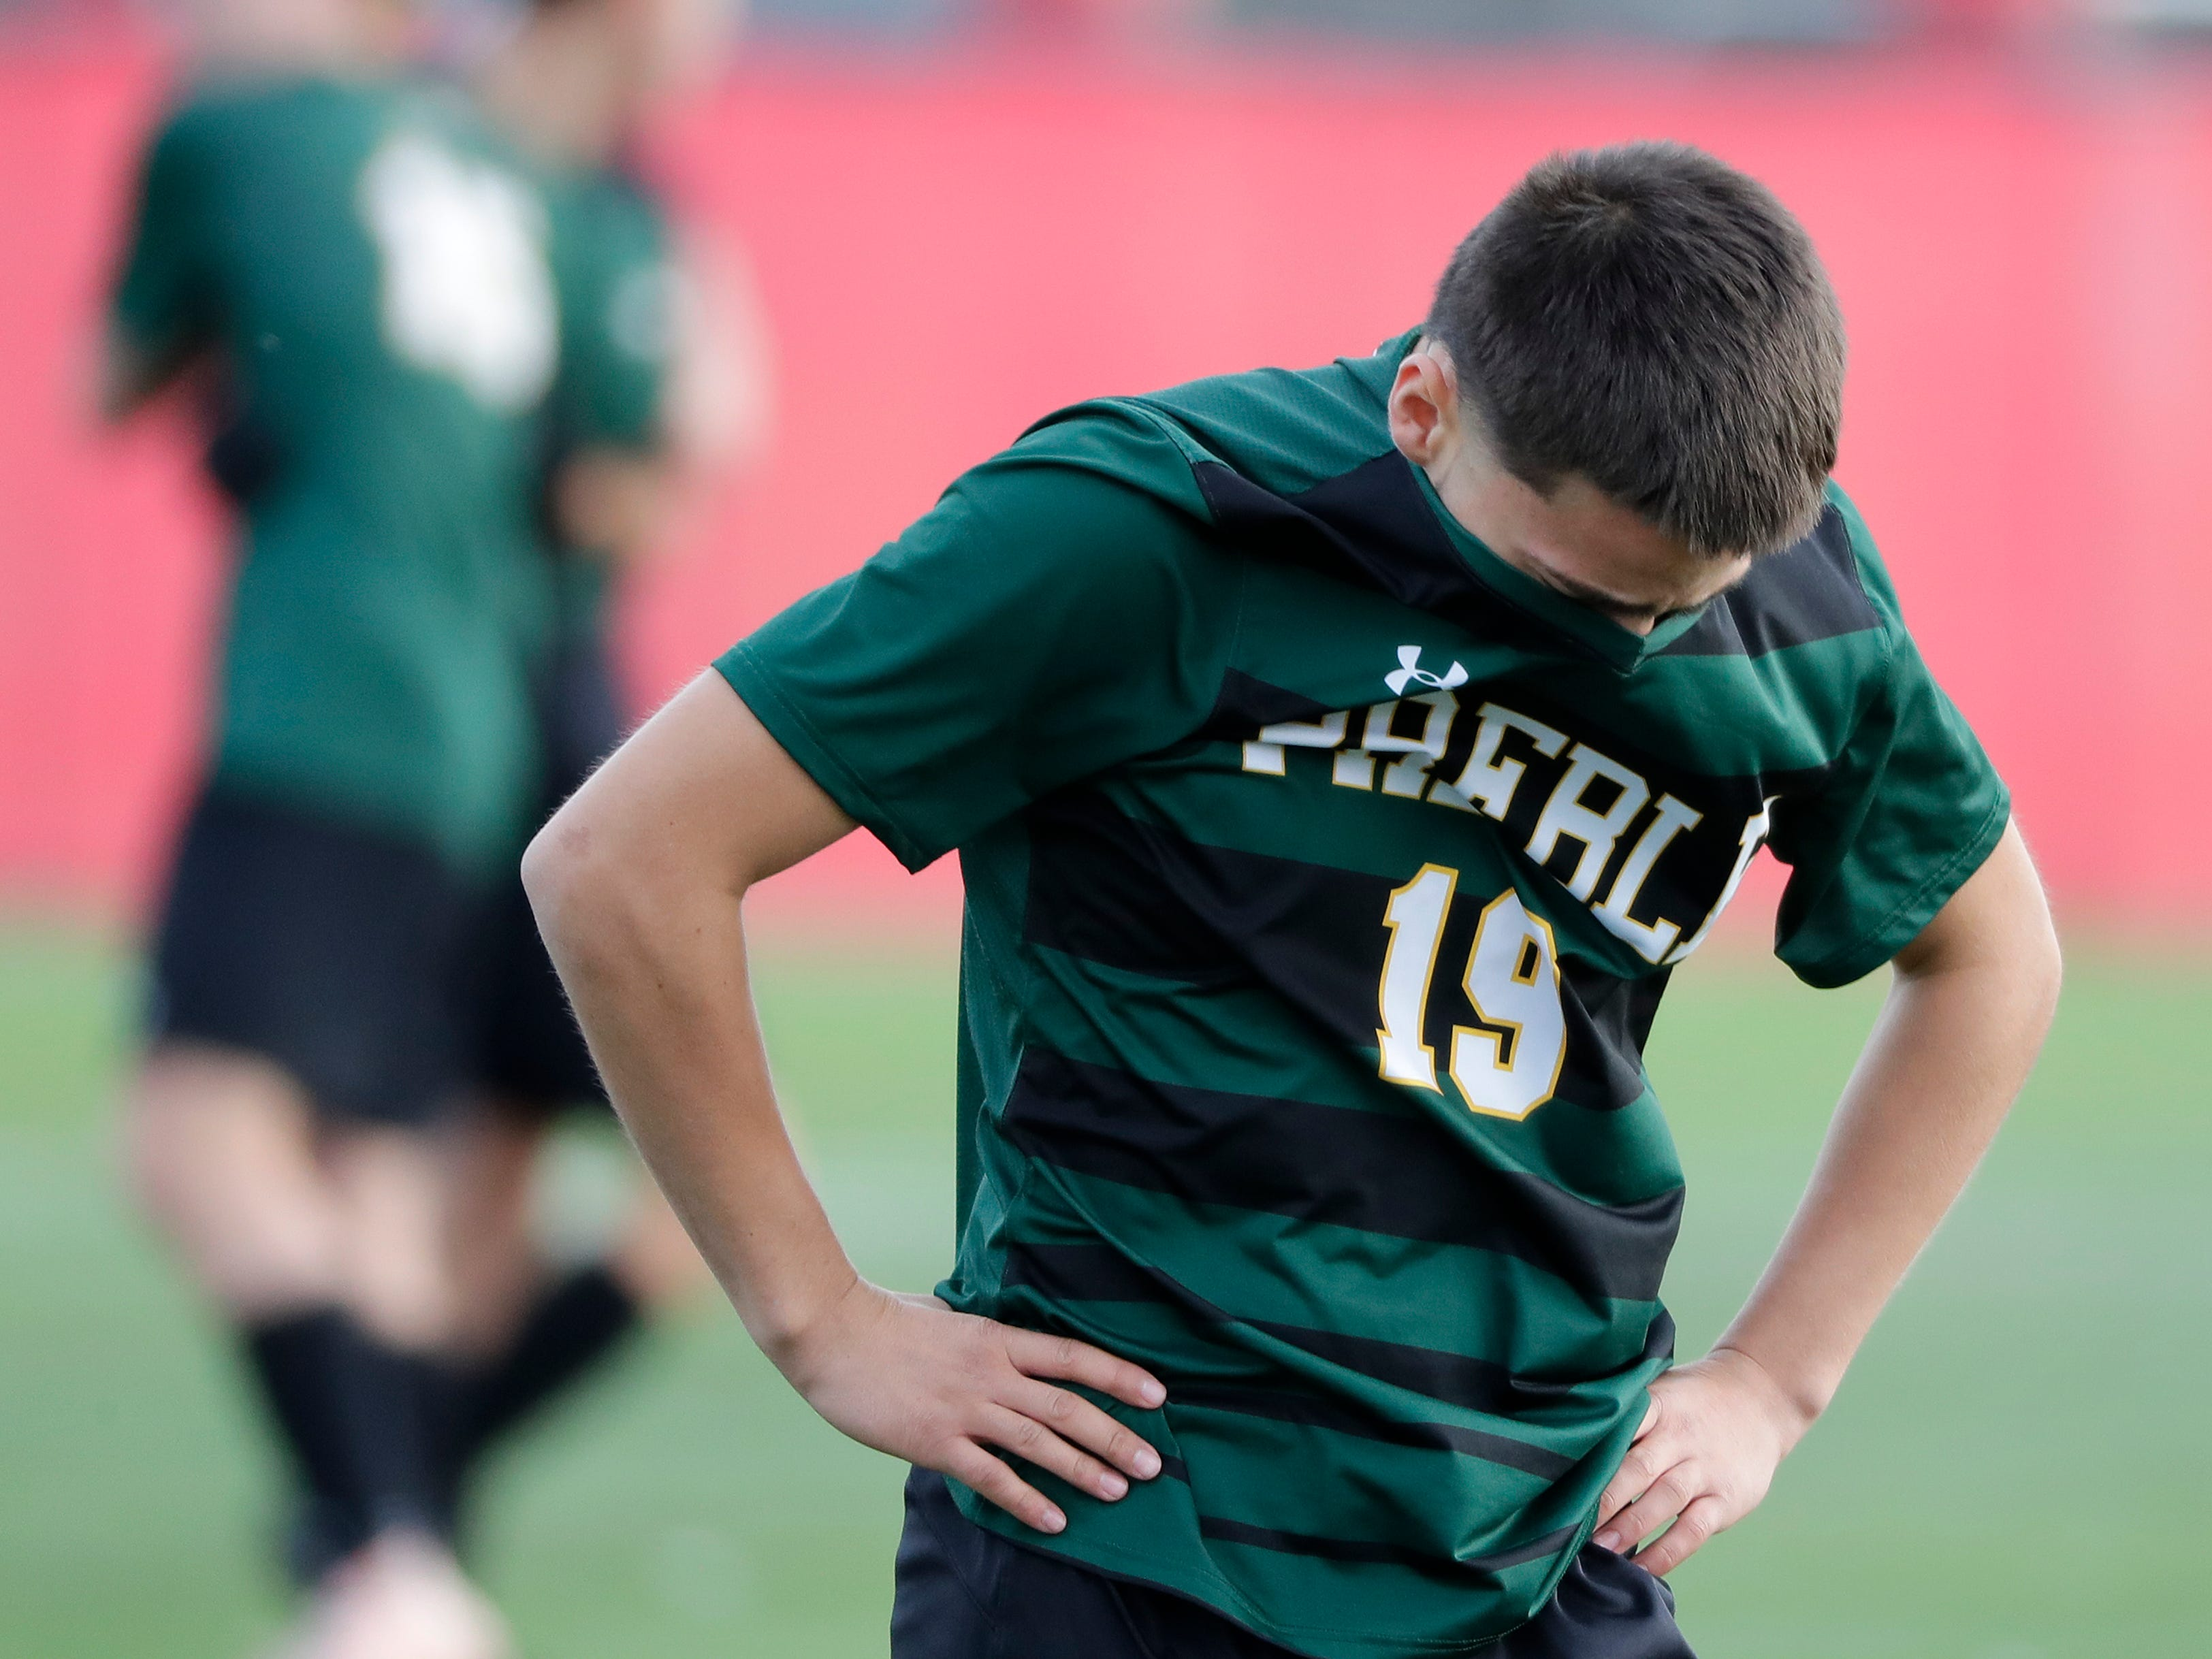 Green Bay Preble High School's Gonzalo Huete (19) hangs his head after a 3-0 loss against Hamilton High School's  during their WIAA Division 1 state semifinal boys soccer game Friday, November 2, 2018, at Uihlein Soccer Park in Milwaukee, Wis.